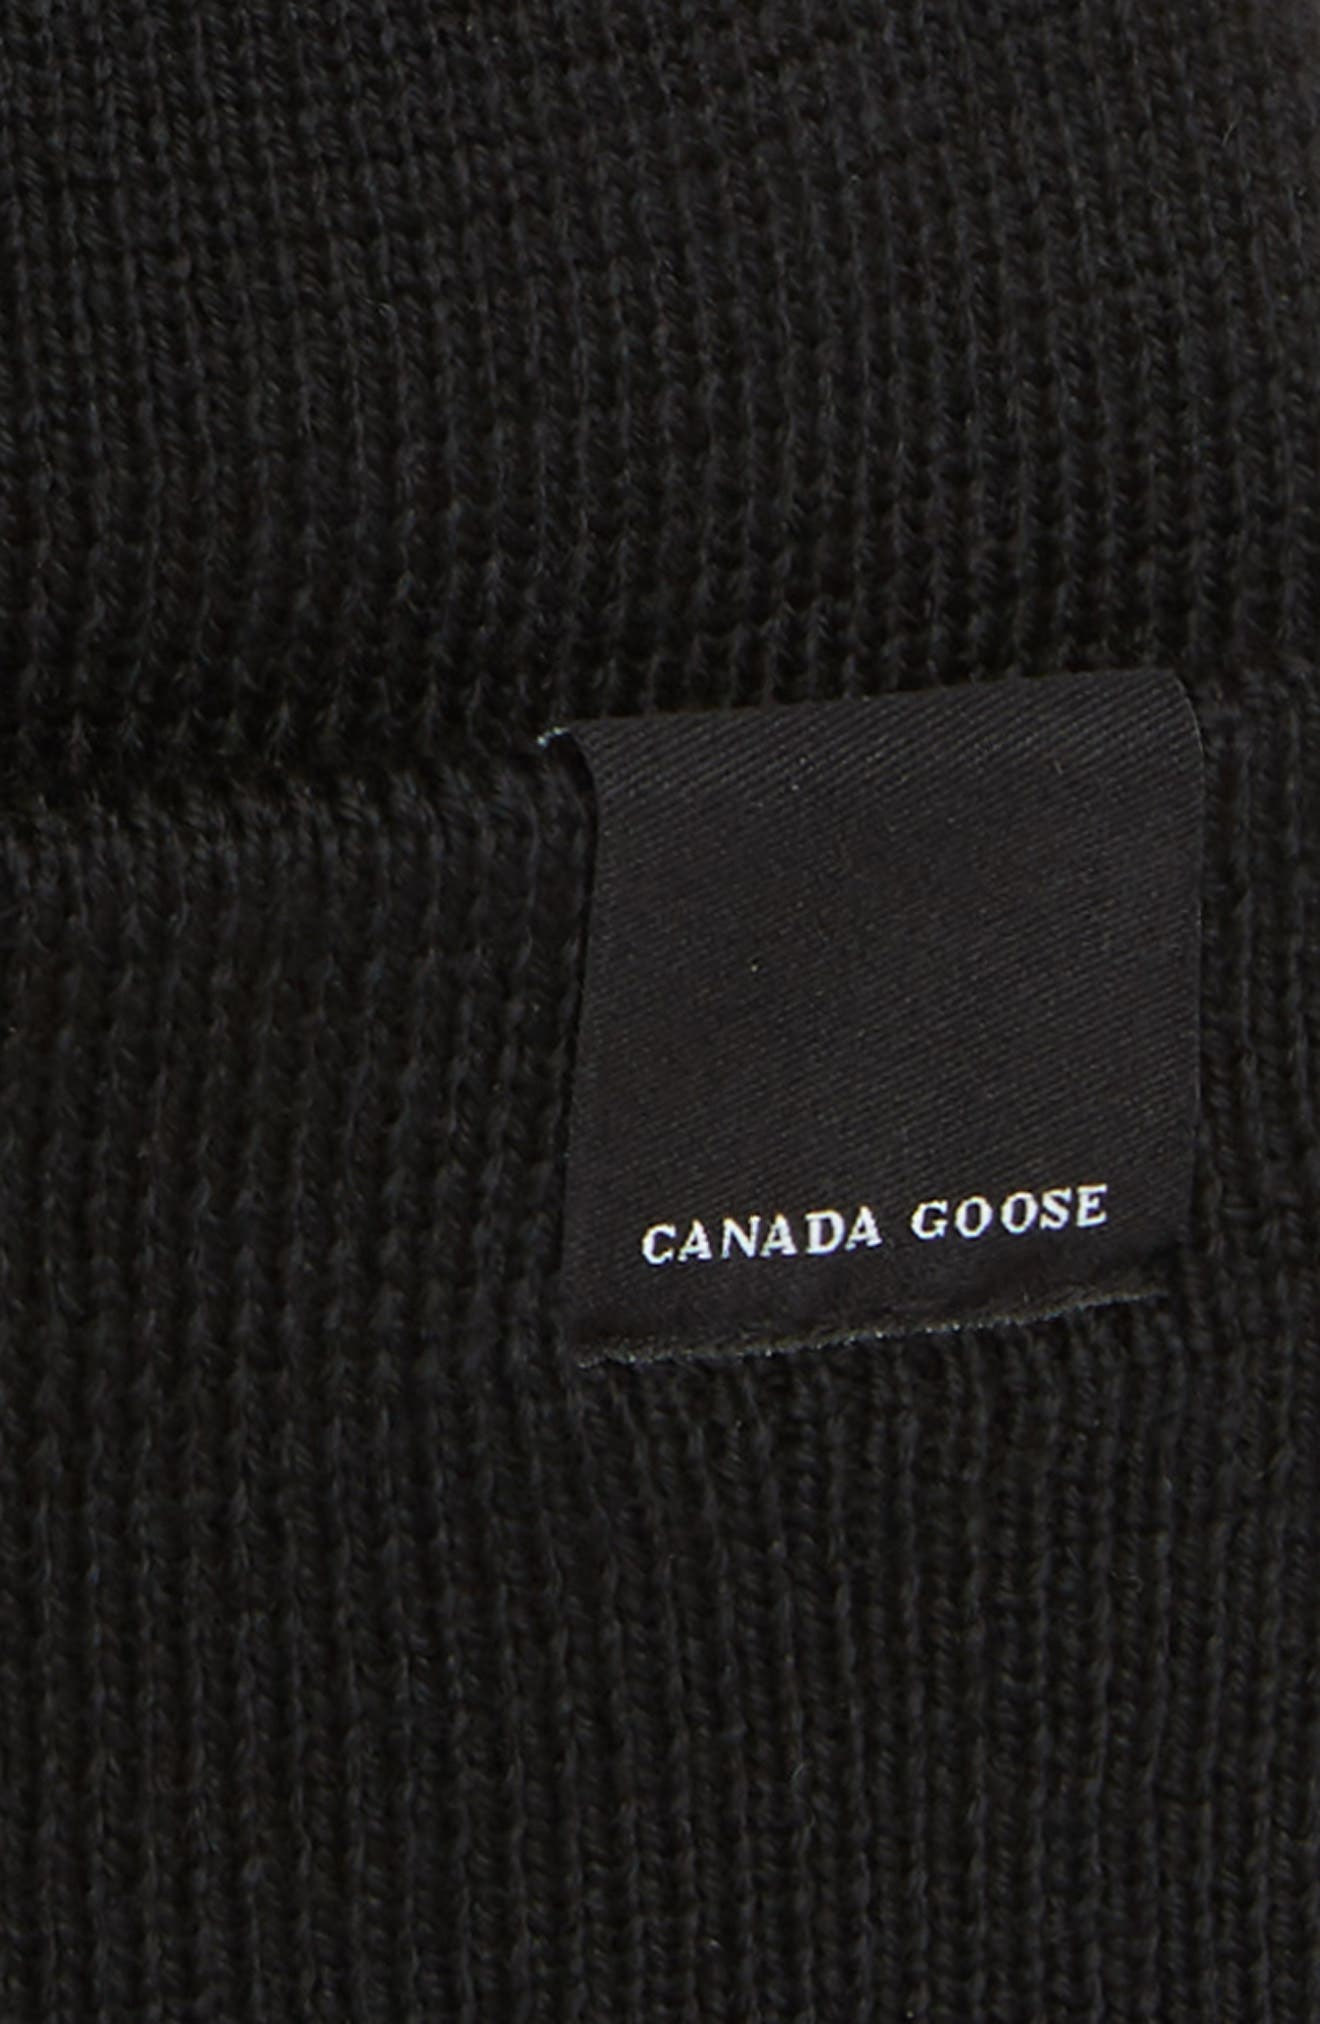 CANADA GOOSE,                             Classic Merino Wool Beanie,                             Alternate thumbnail 2, color,                             001